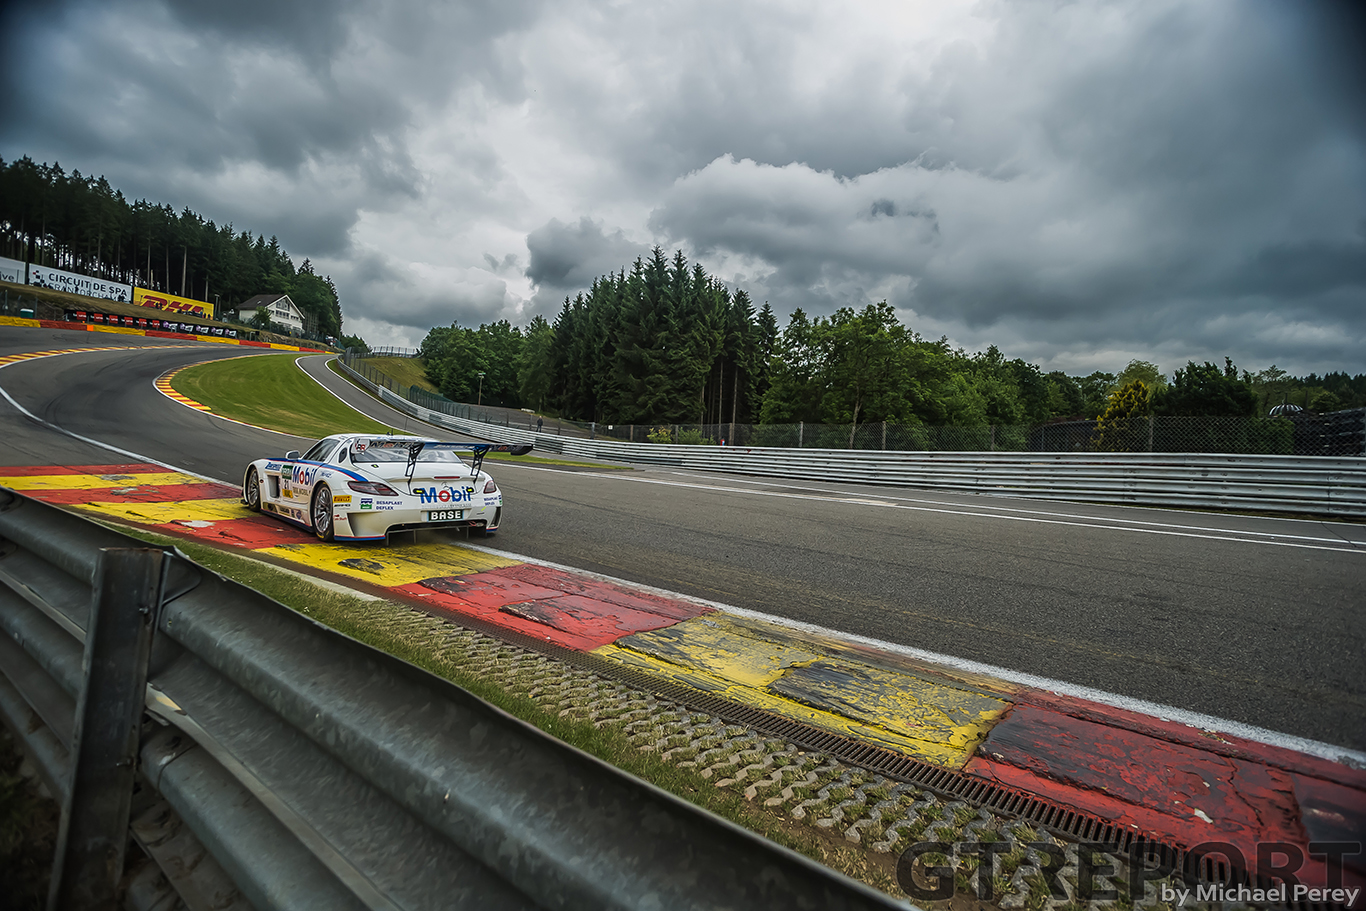 Weekend round-up: VLN, Blancpain GT, Super GT, ADAC GT, European GT4